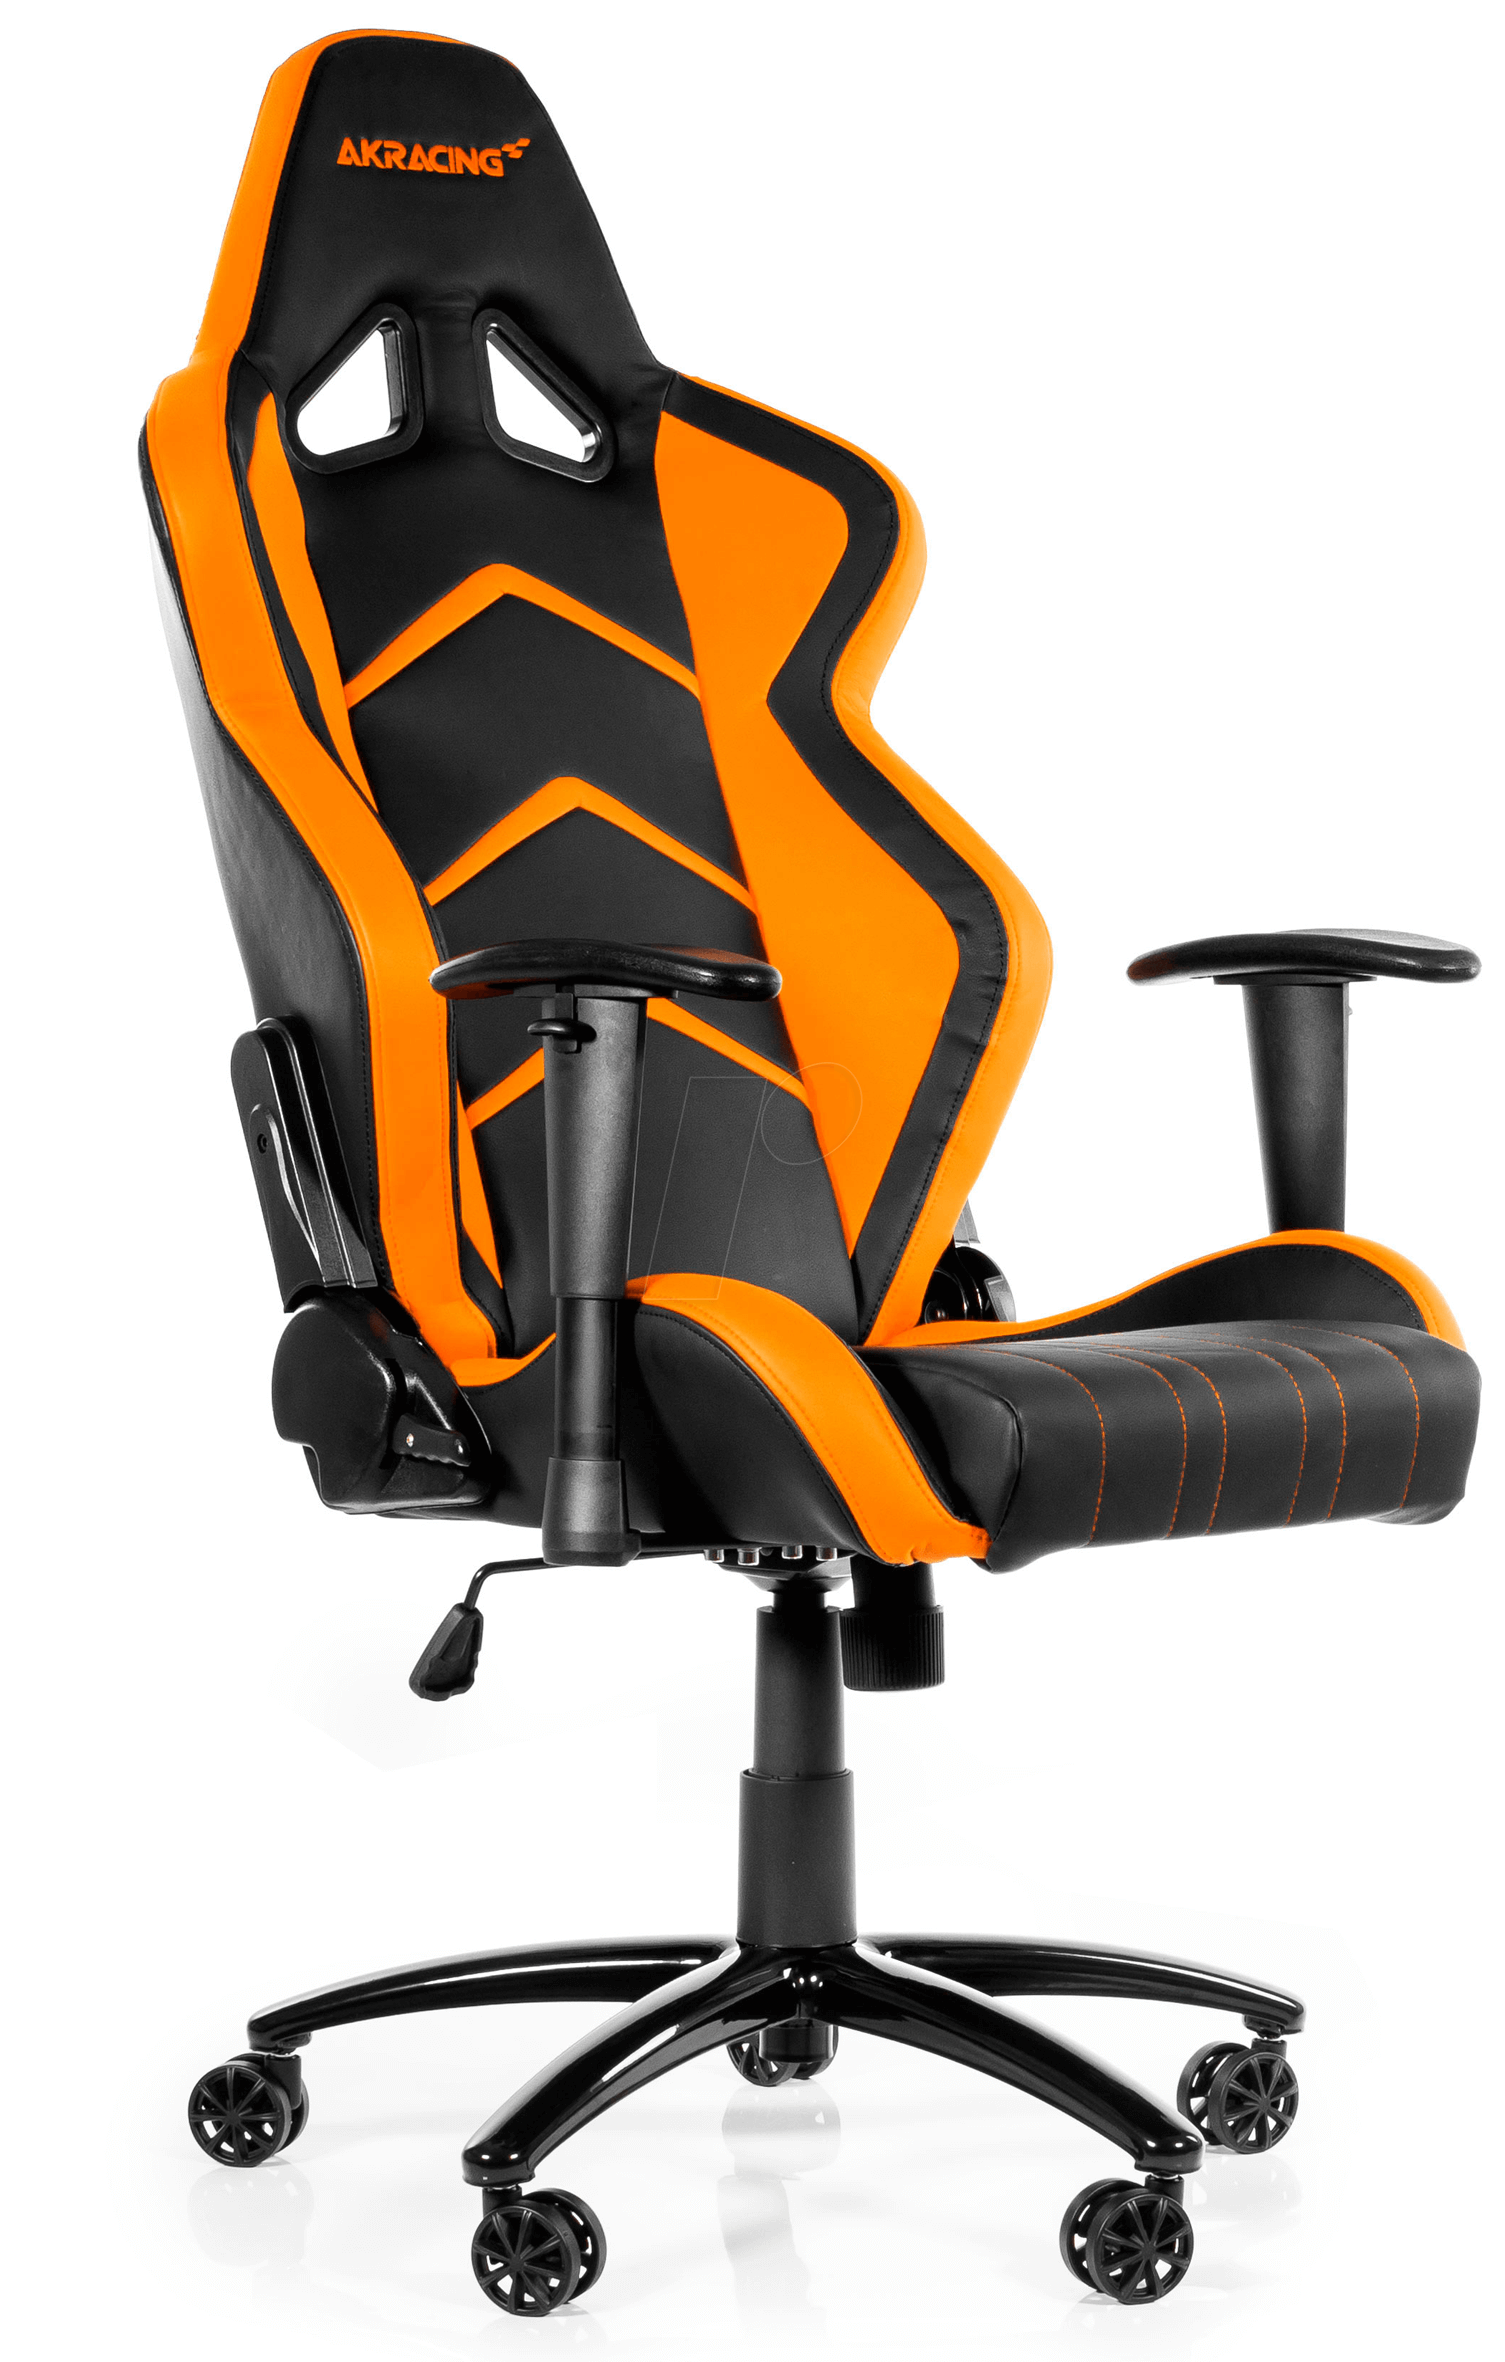 ak k6014 bo gaming stuhl akracing player schwarz orange bei reichelt elektronik. Black Bedroom Furniture Sets. Home Design Ideas